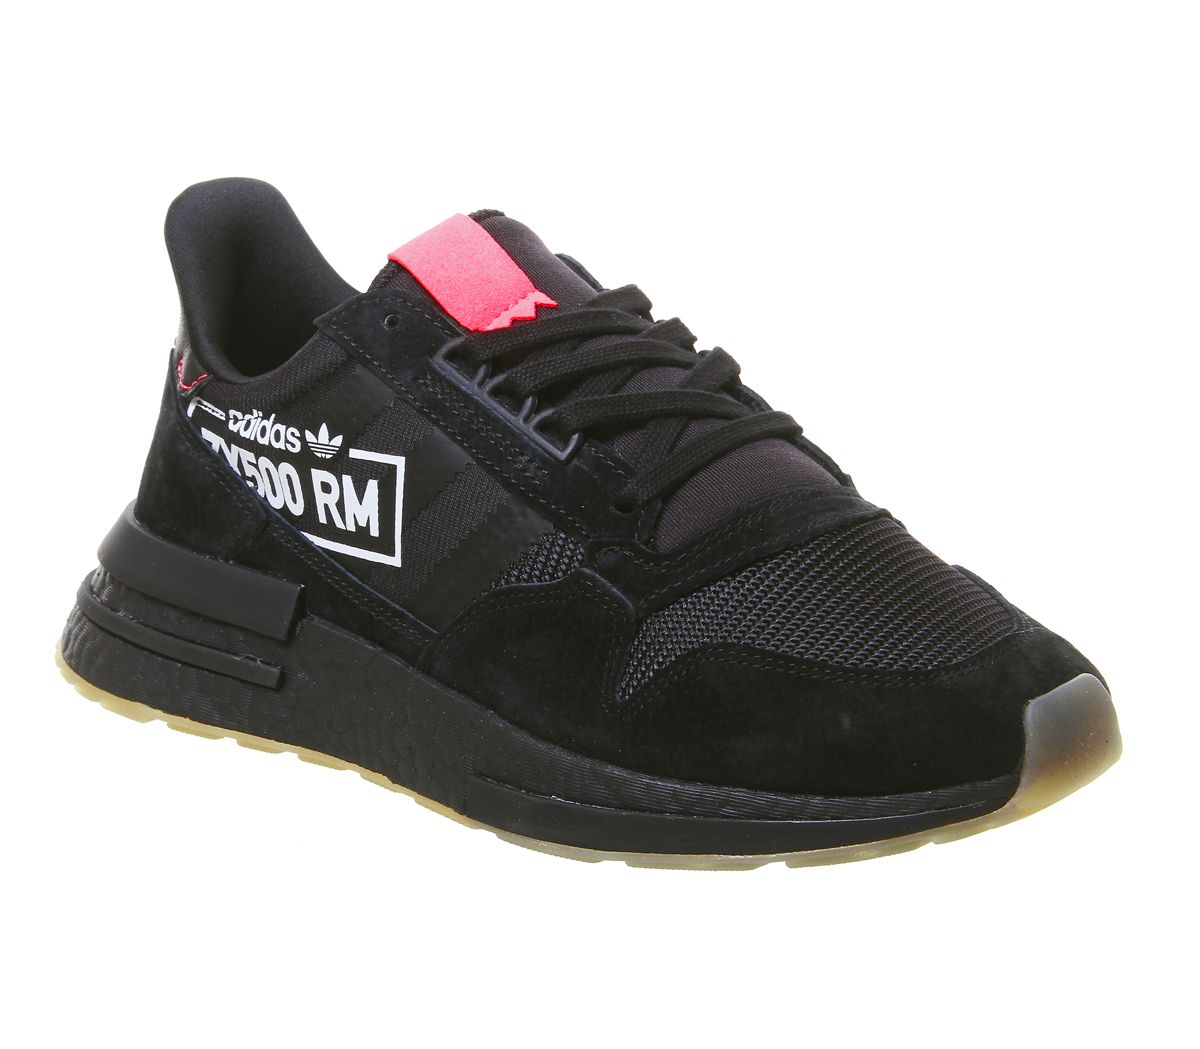 check out 881f1 8b04c Zx500 Rm Trainers